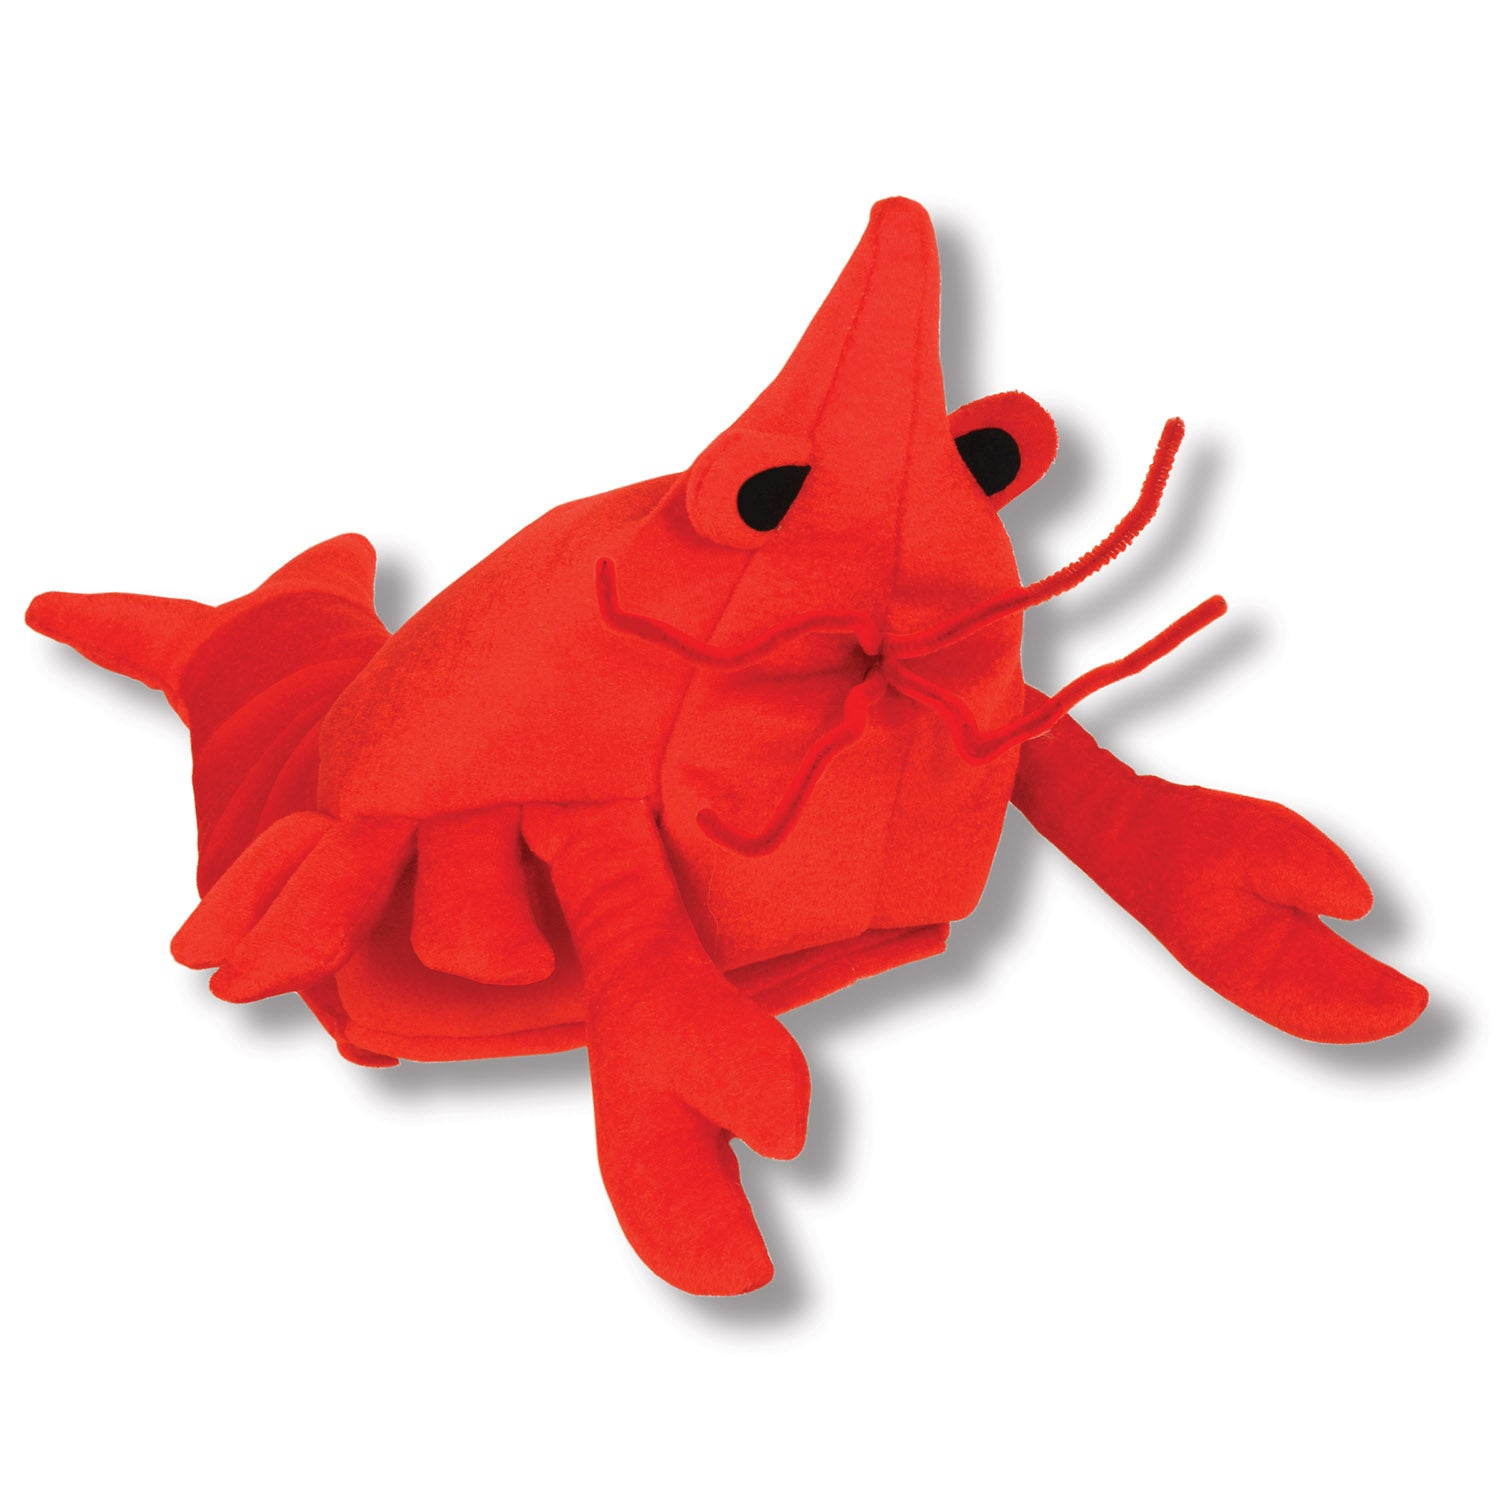 Plush Crawfish Hat by Beistle - Mardi Gras Theme Decorations